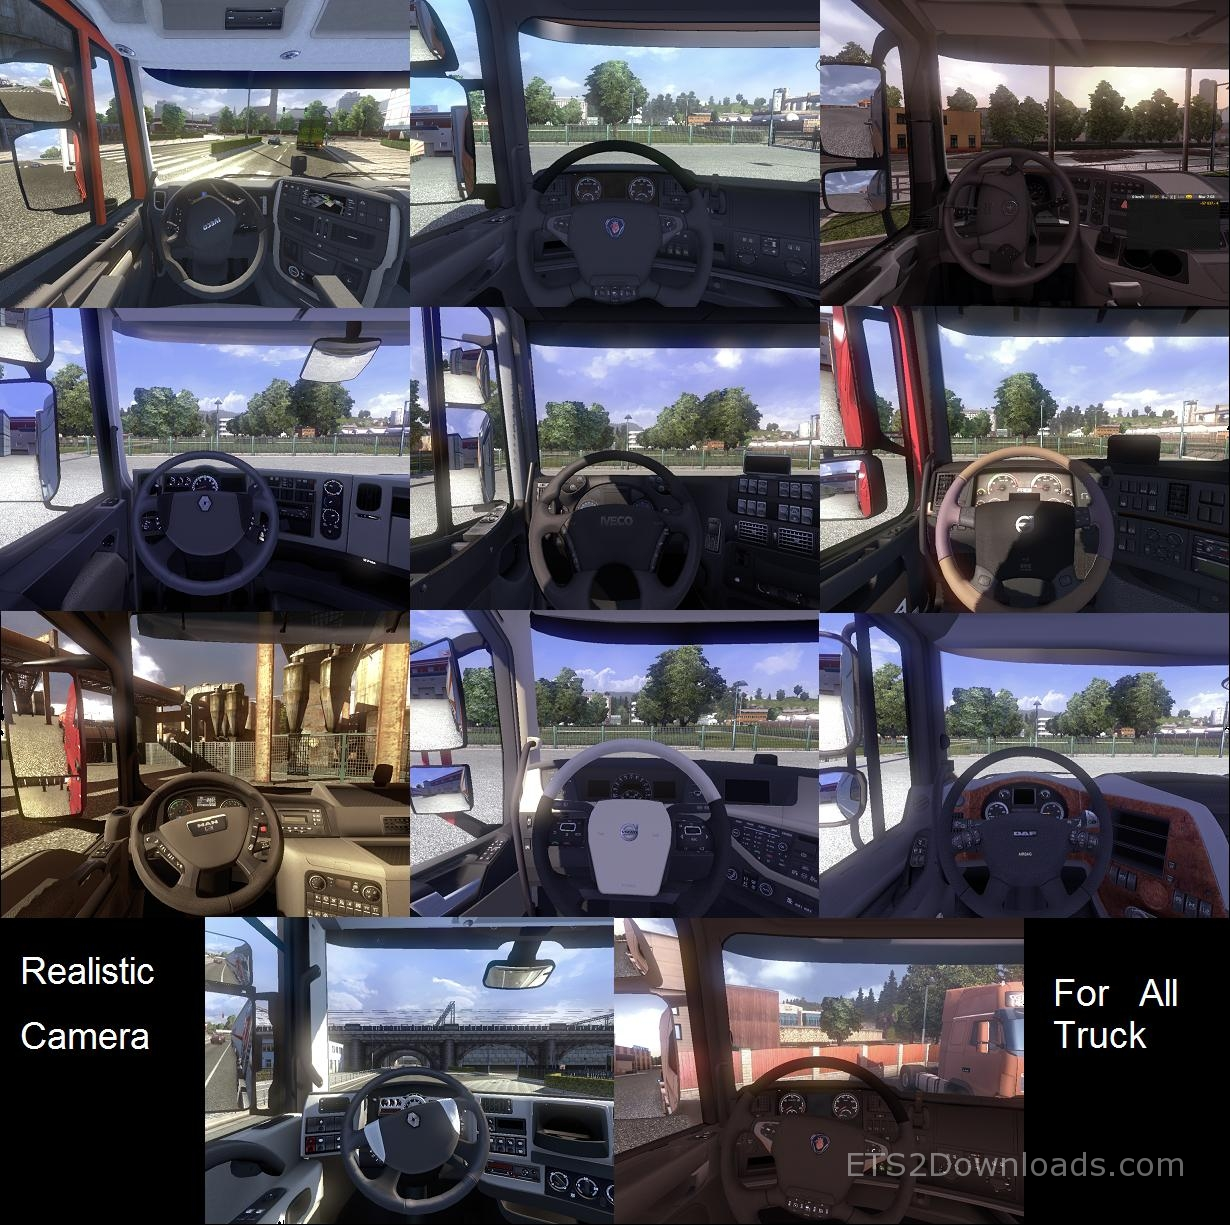 real-camera-angel-ets2